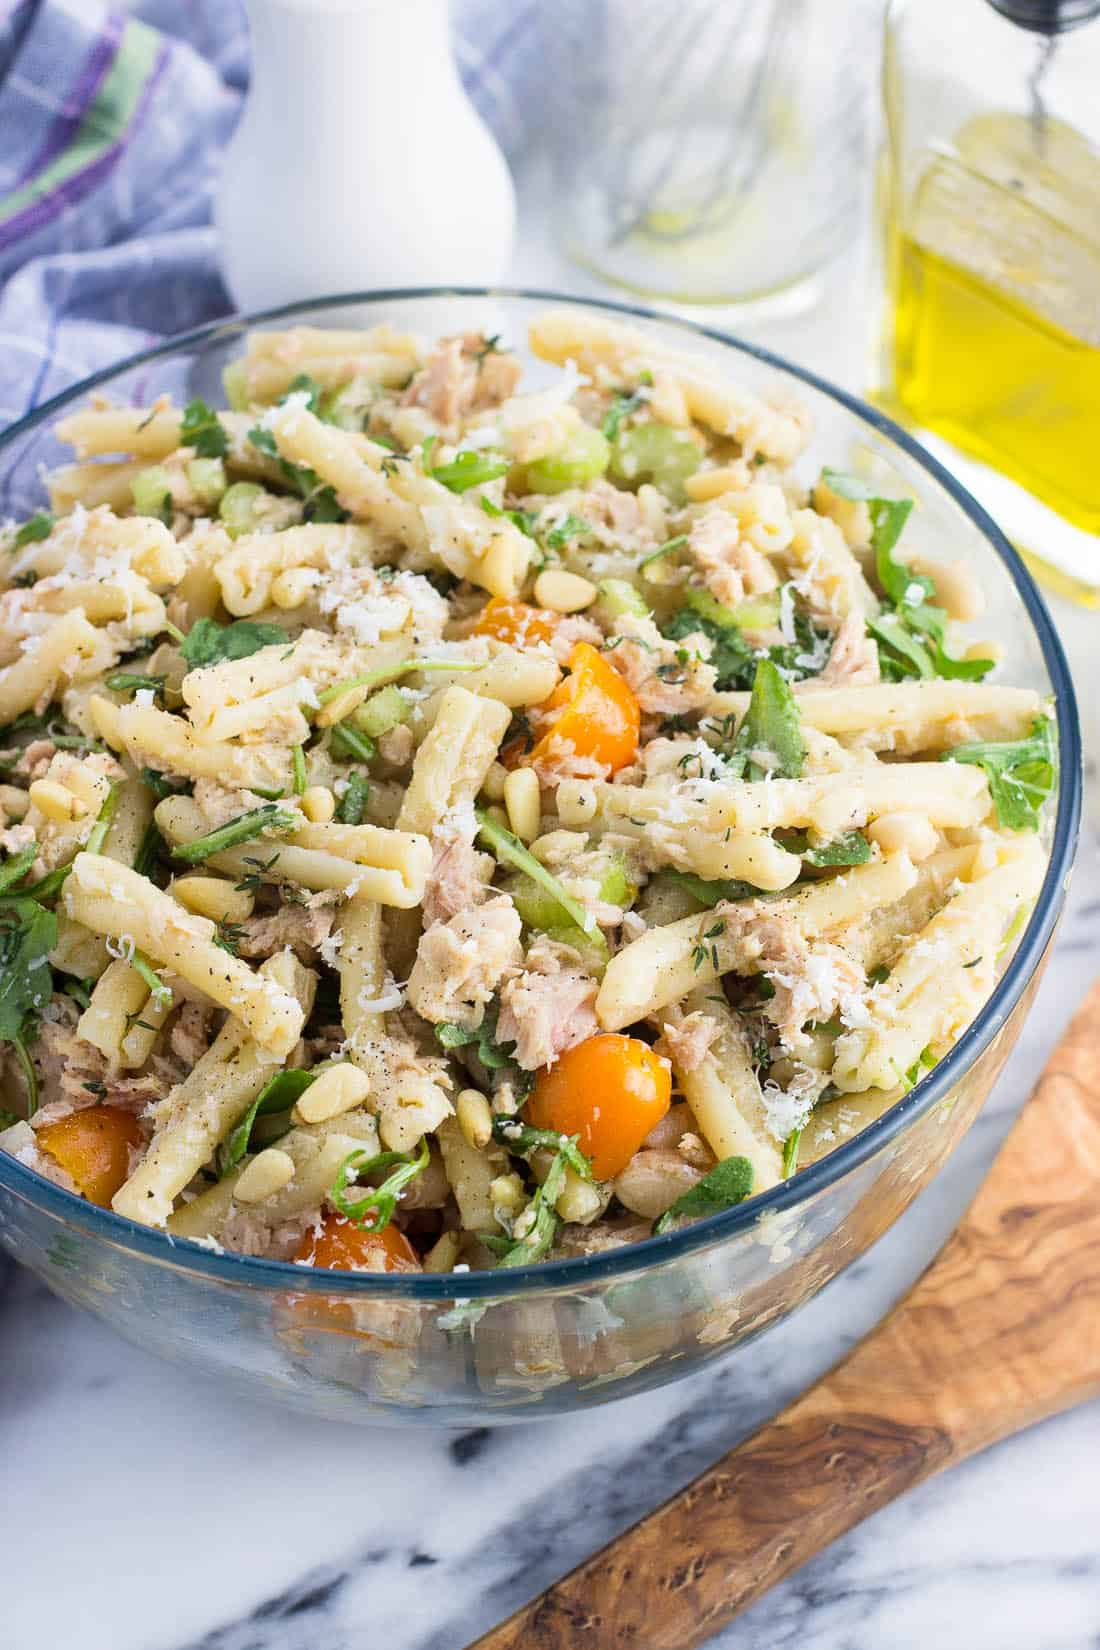 Tuna pasta salad in a serving bowl